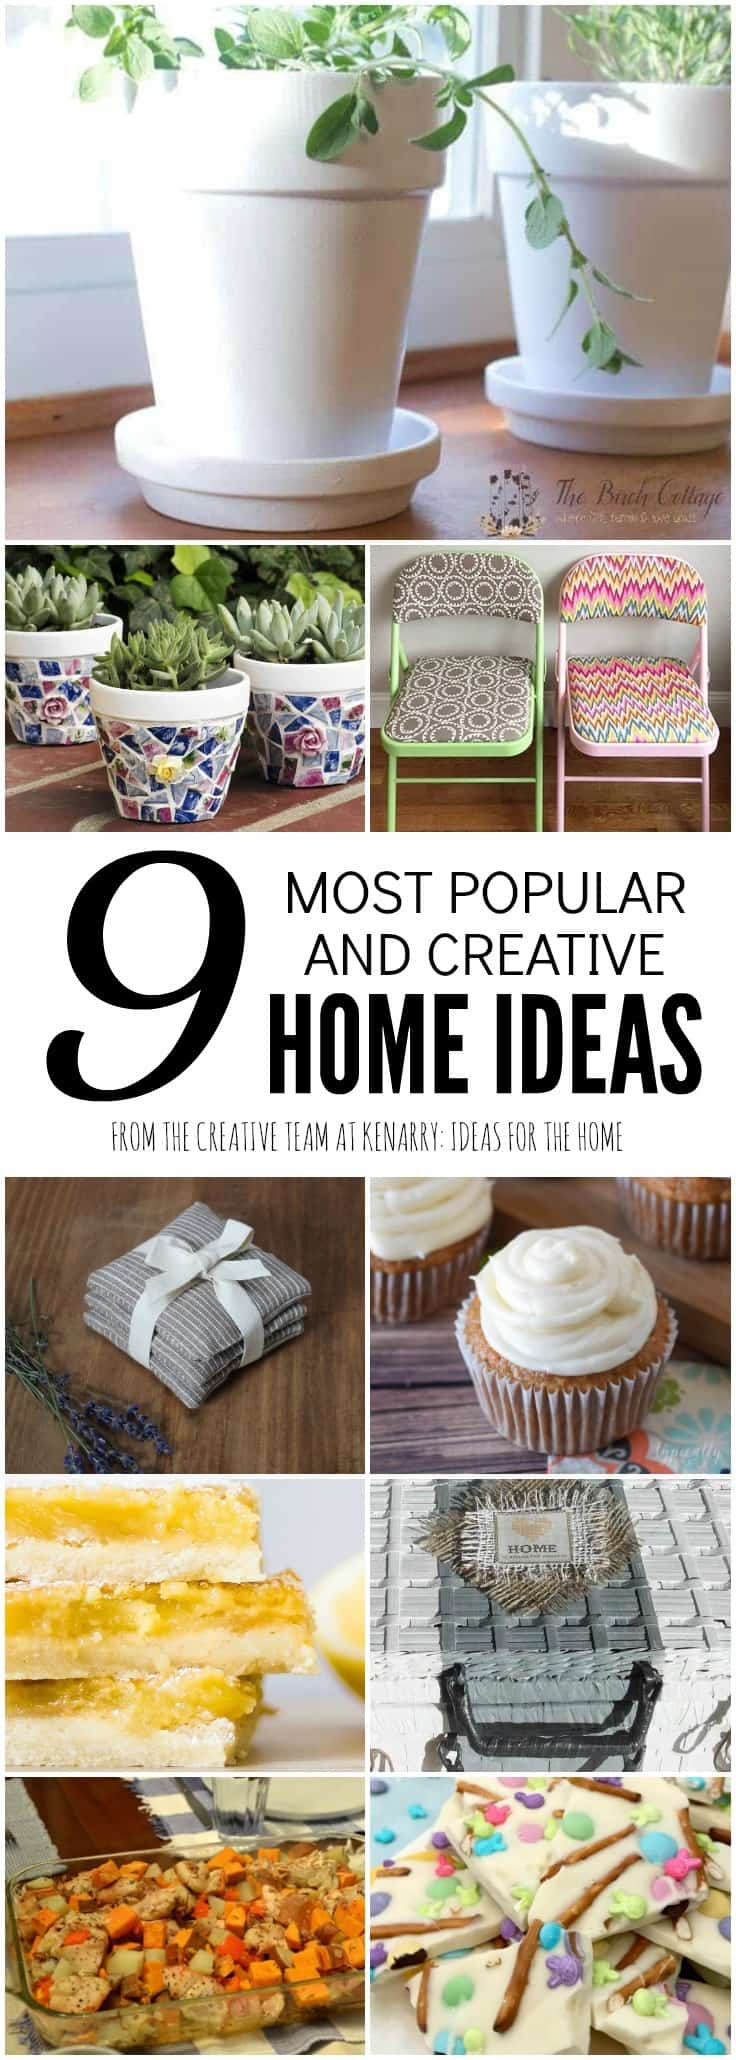 Check out the 9 most popular home ideas from the Kenarry Creative Team including the best recipes, crafts, DIY projects, decor and more.